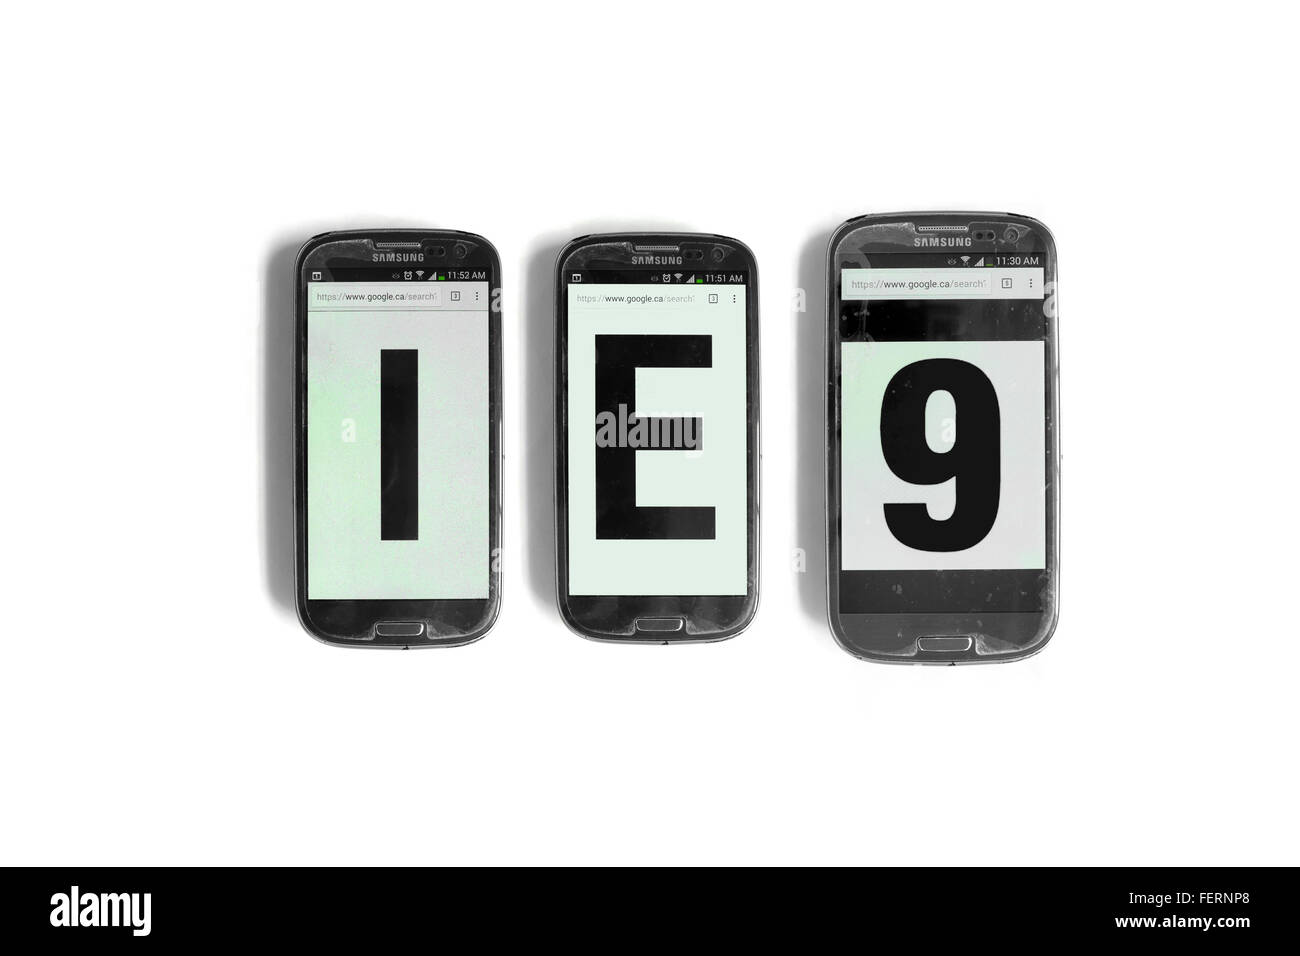 IE9 on the screens of smartphones photographed against a  white background. - Stock Image